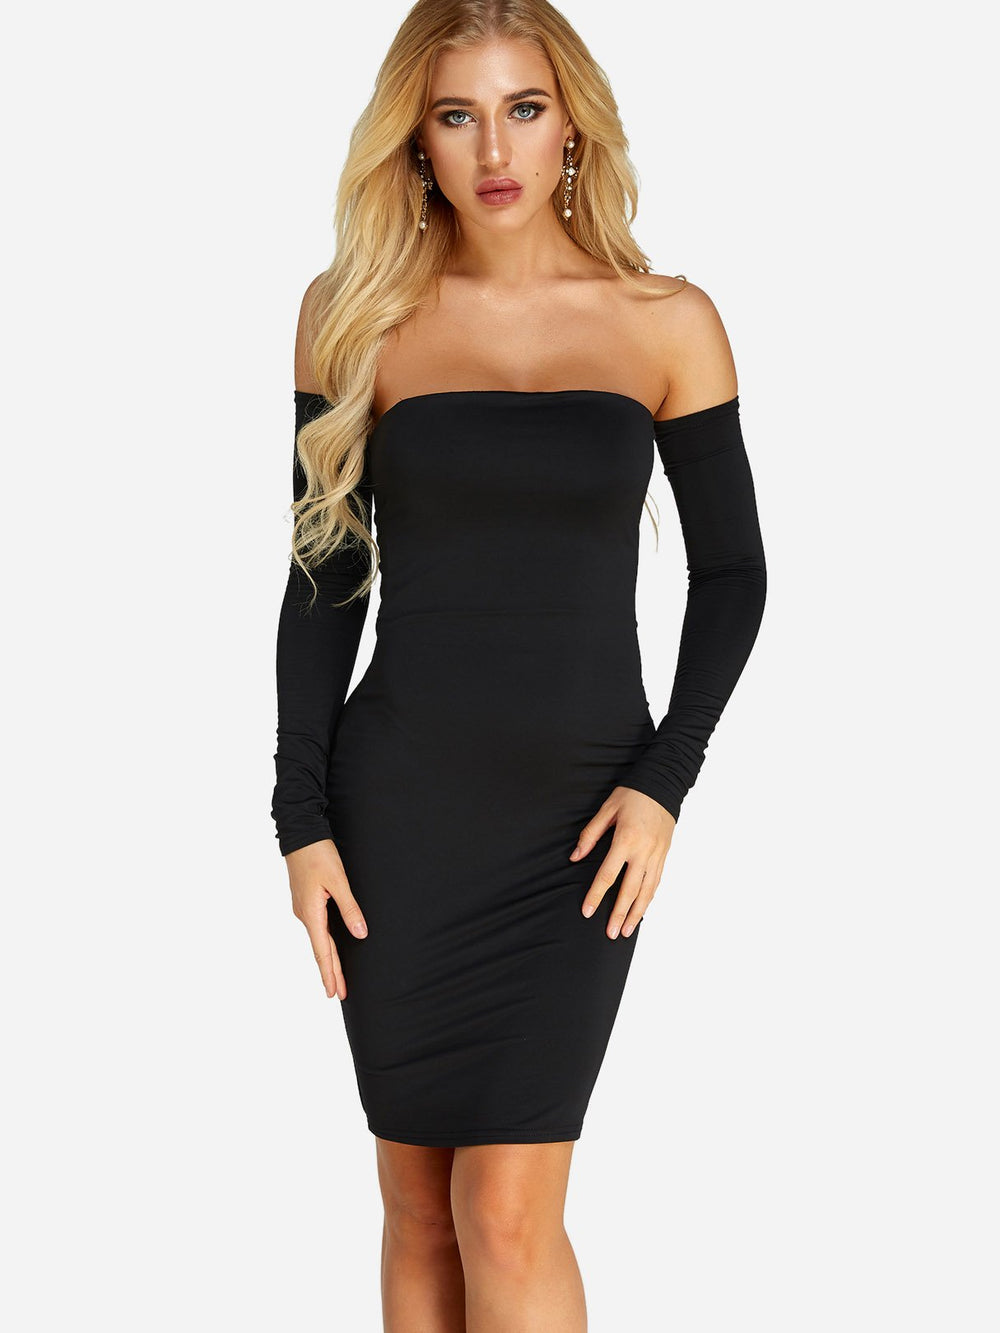 Black Off The Shoulder Long Sleeve Plain Backless Dresses